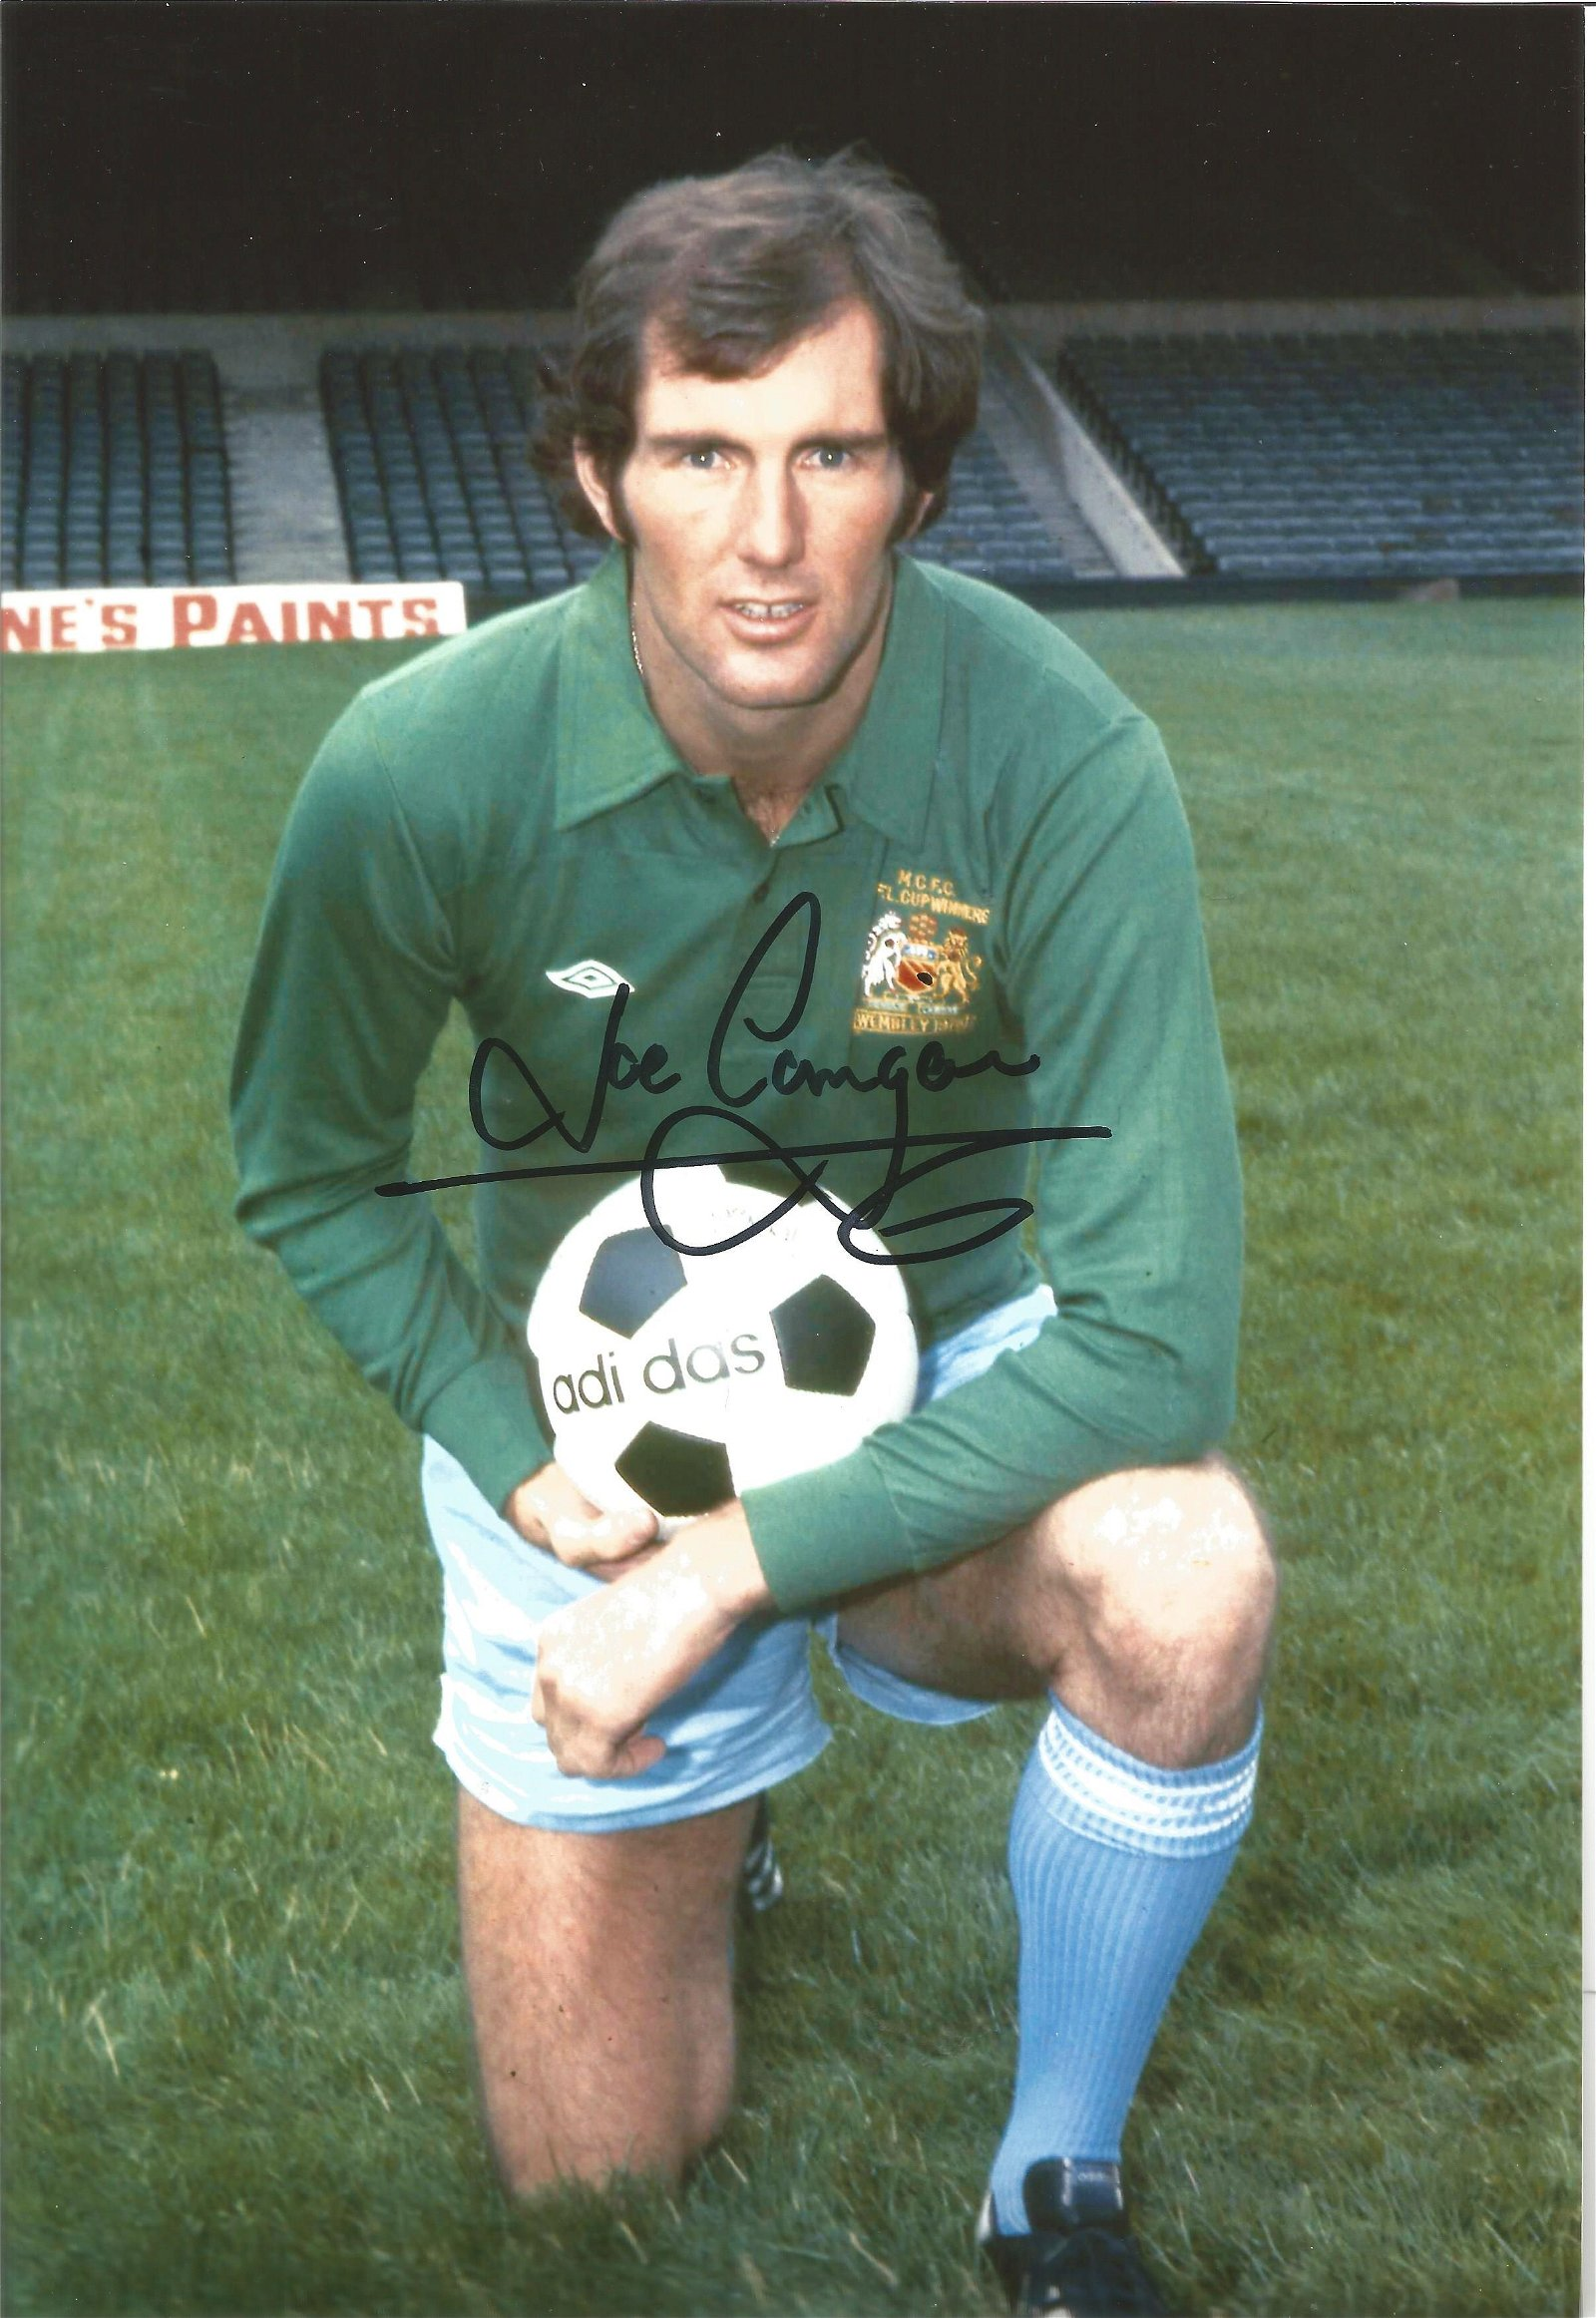 Joe Corrigan signed 12x8 colour football photo pictured